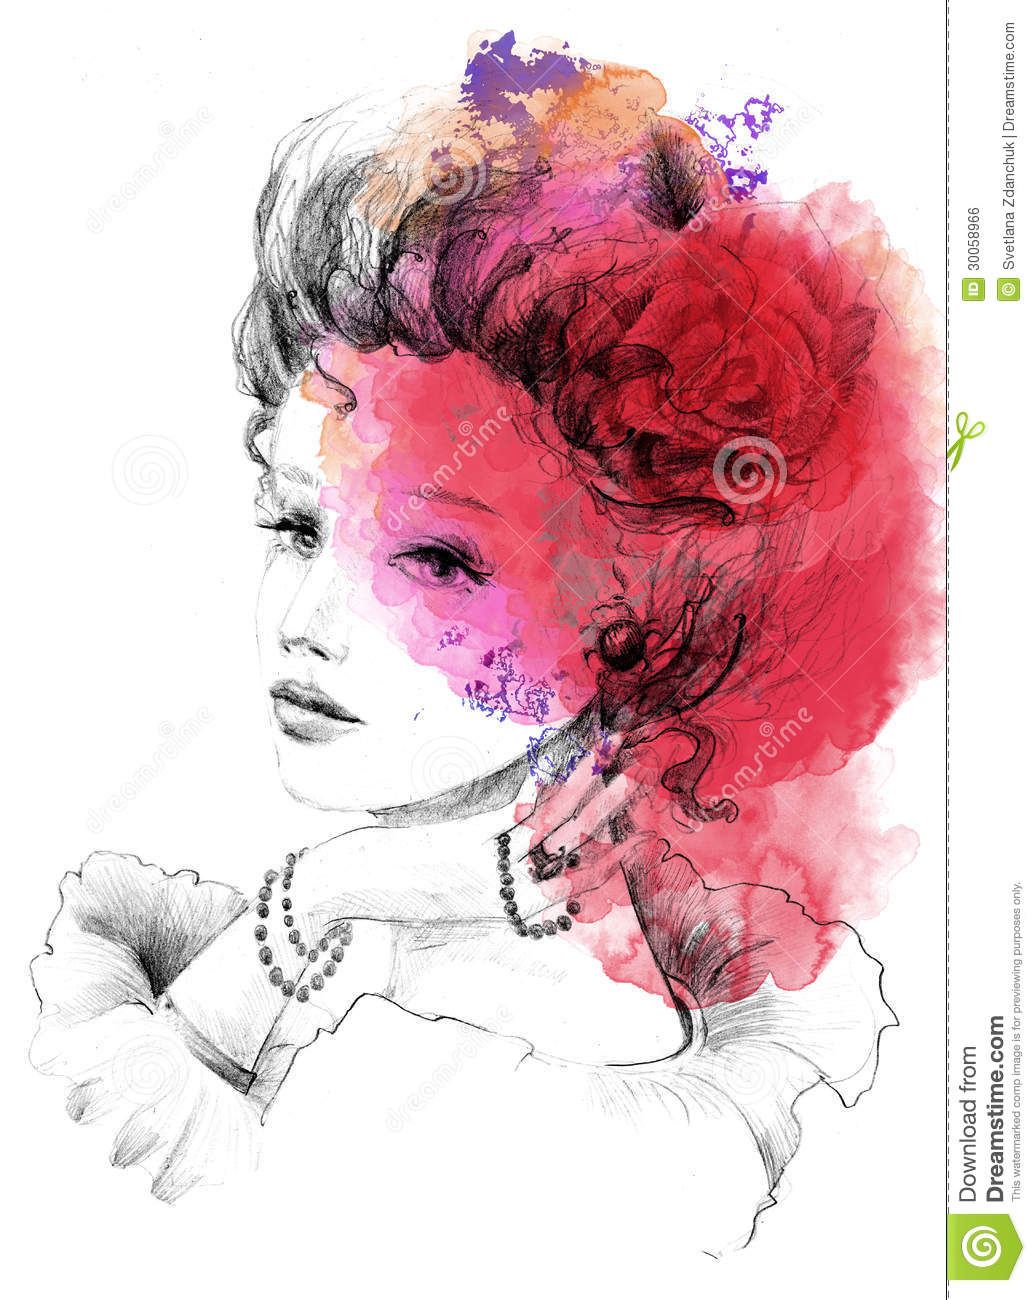 Lovely Lady In Pencil Technique With Watercolor Royalty Free Stock ...